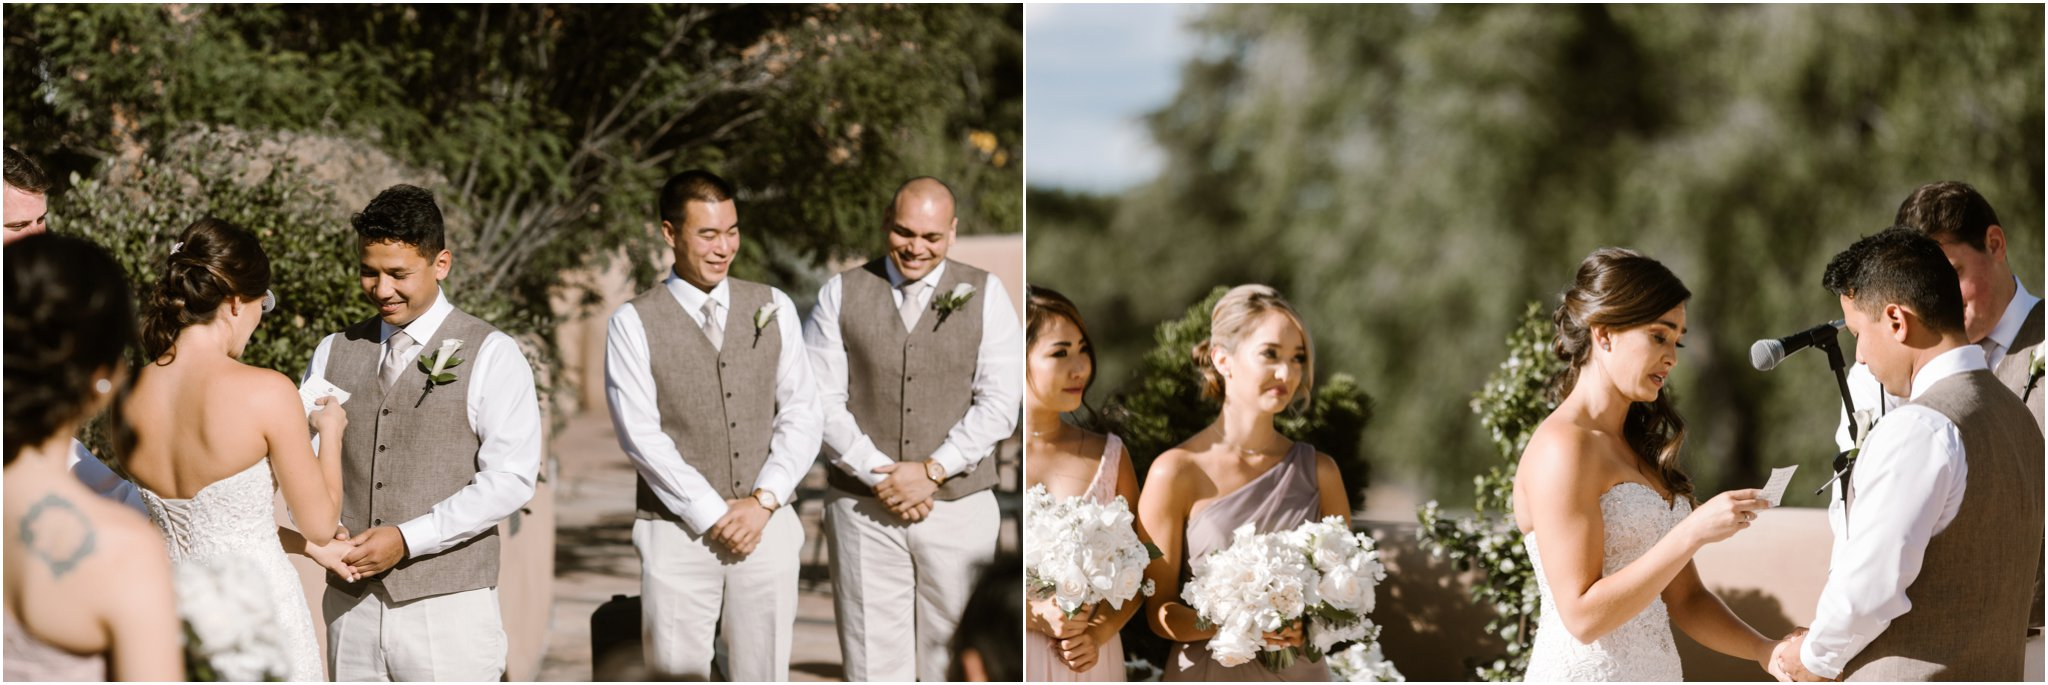 0030La Fonda Weddings Blue Rose Photography Studios